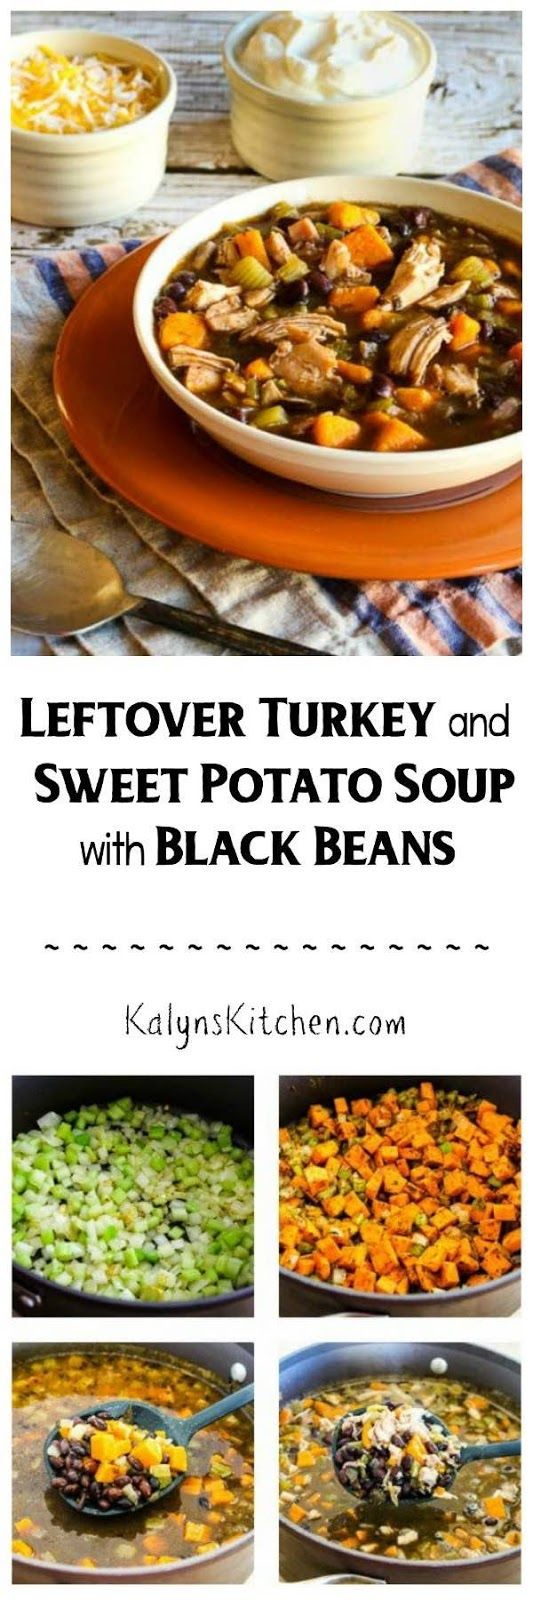 Leftover Turkey and Sweet Potato Soup with Black Beans has a touch of lime added at the end for a mind-blowingly good soup! Use chicken if you don't have any leftover turkey.  [found on KalynsKitchen.com]